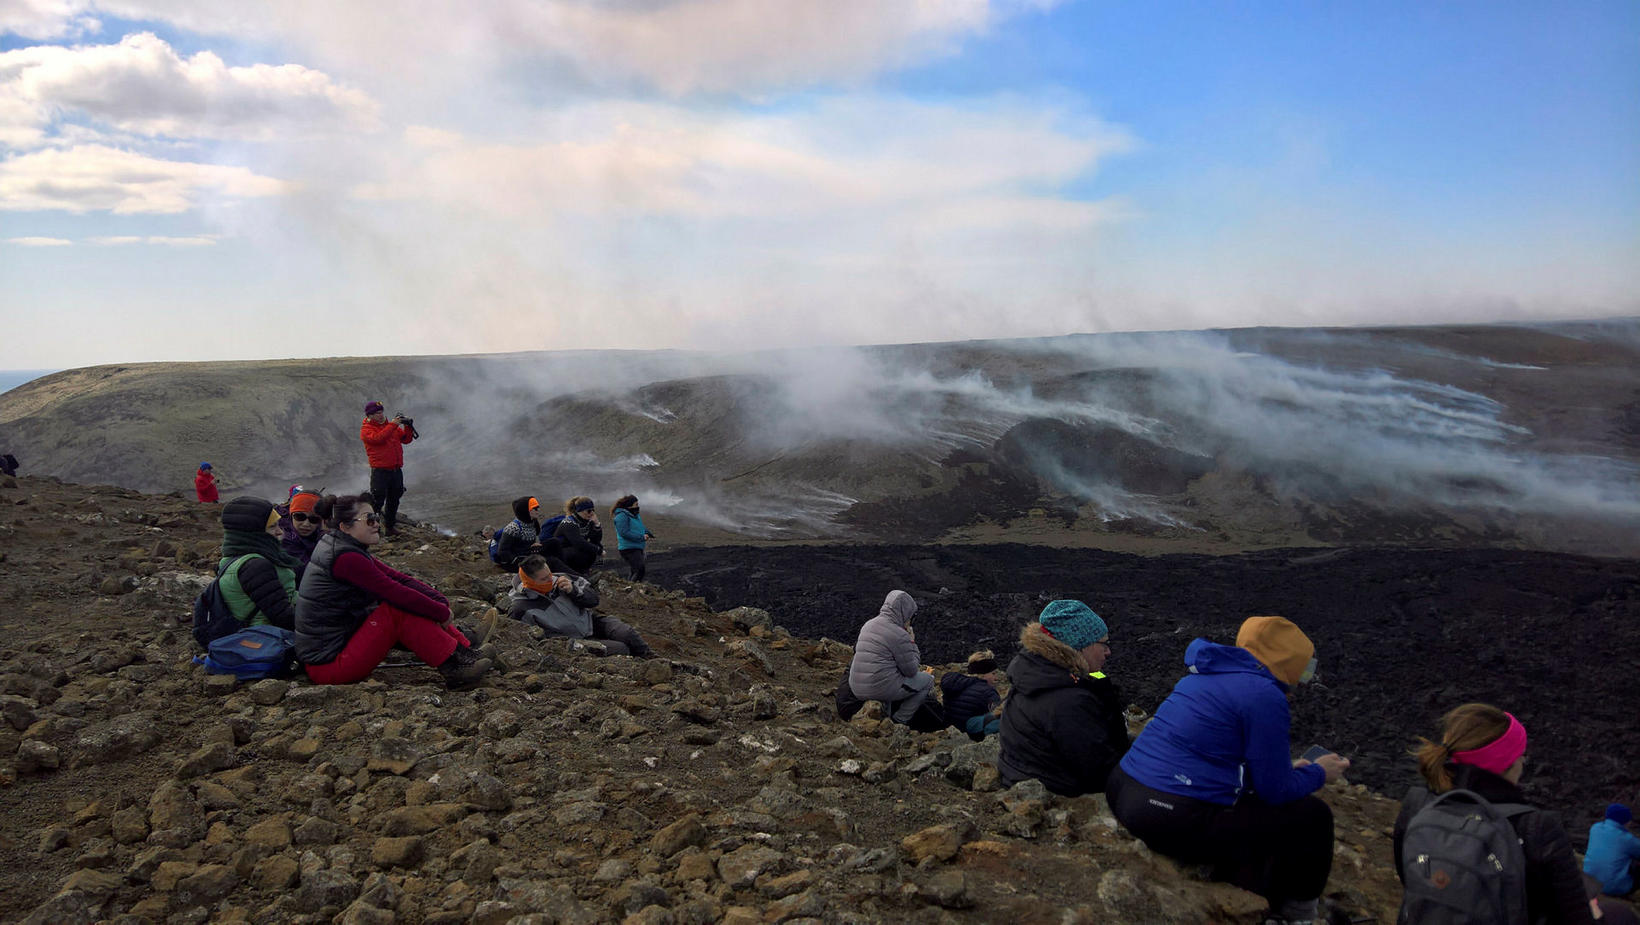 From the eruption site. The smoke in the distance is …